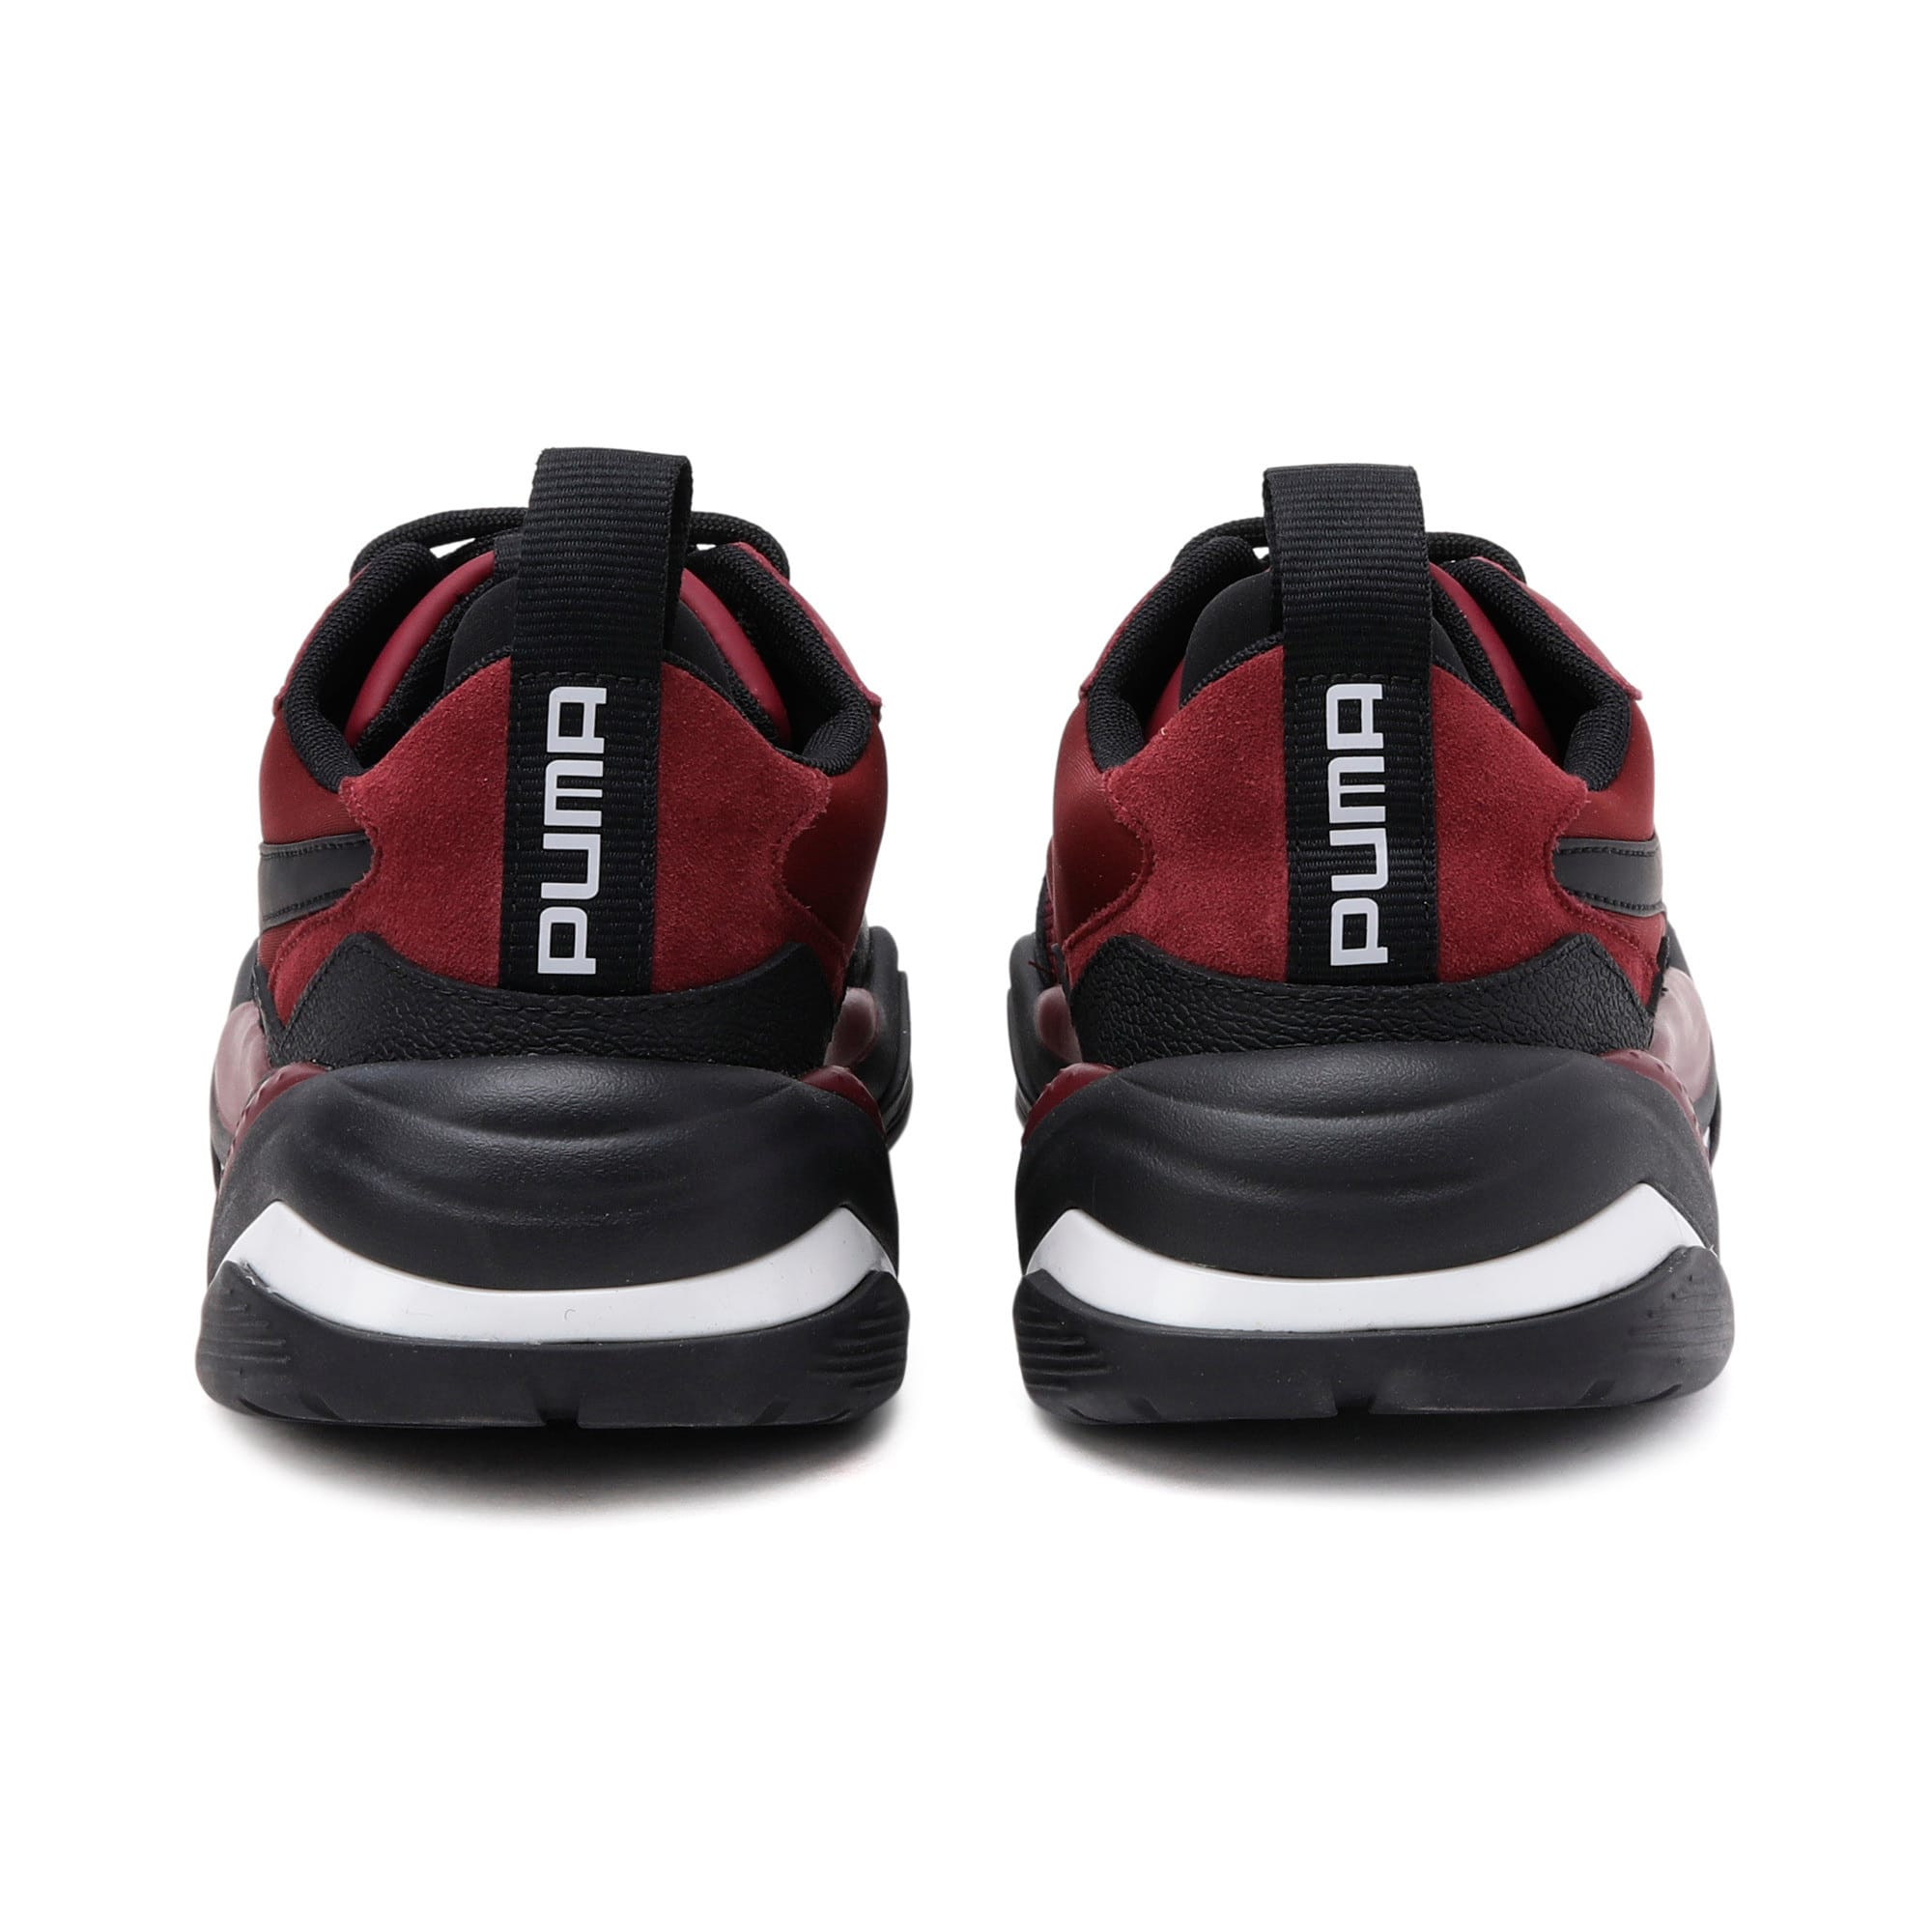 Thumbnail 3 of Thunder Spectra Trainers, Rhododendron-P Black-T Port, medium-IND